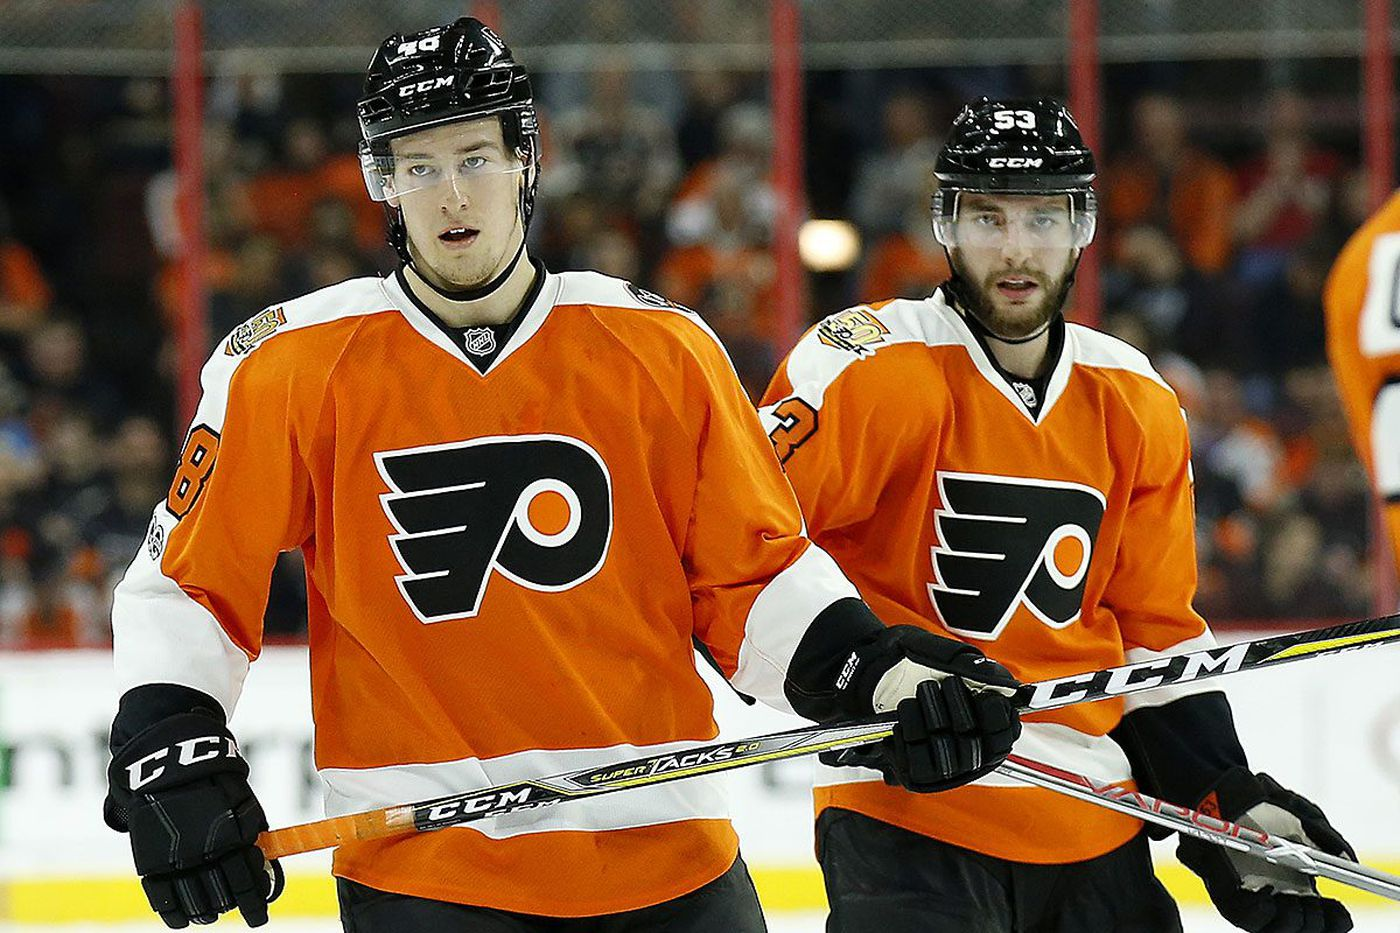 Flyers rookie Robert Hagg helping Shayne Gostisbehere get off to fast start